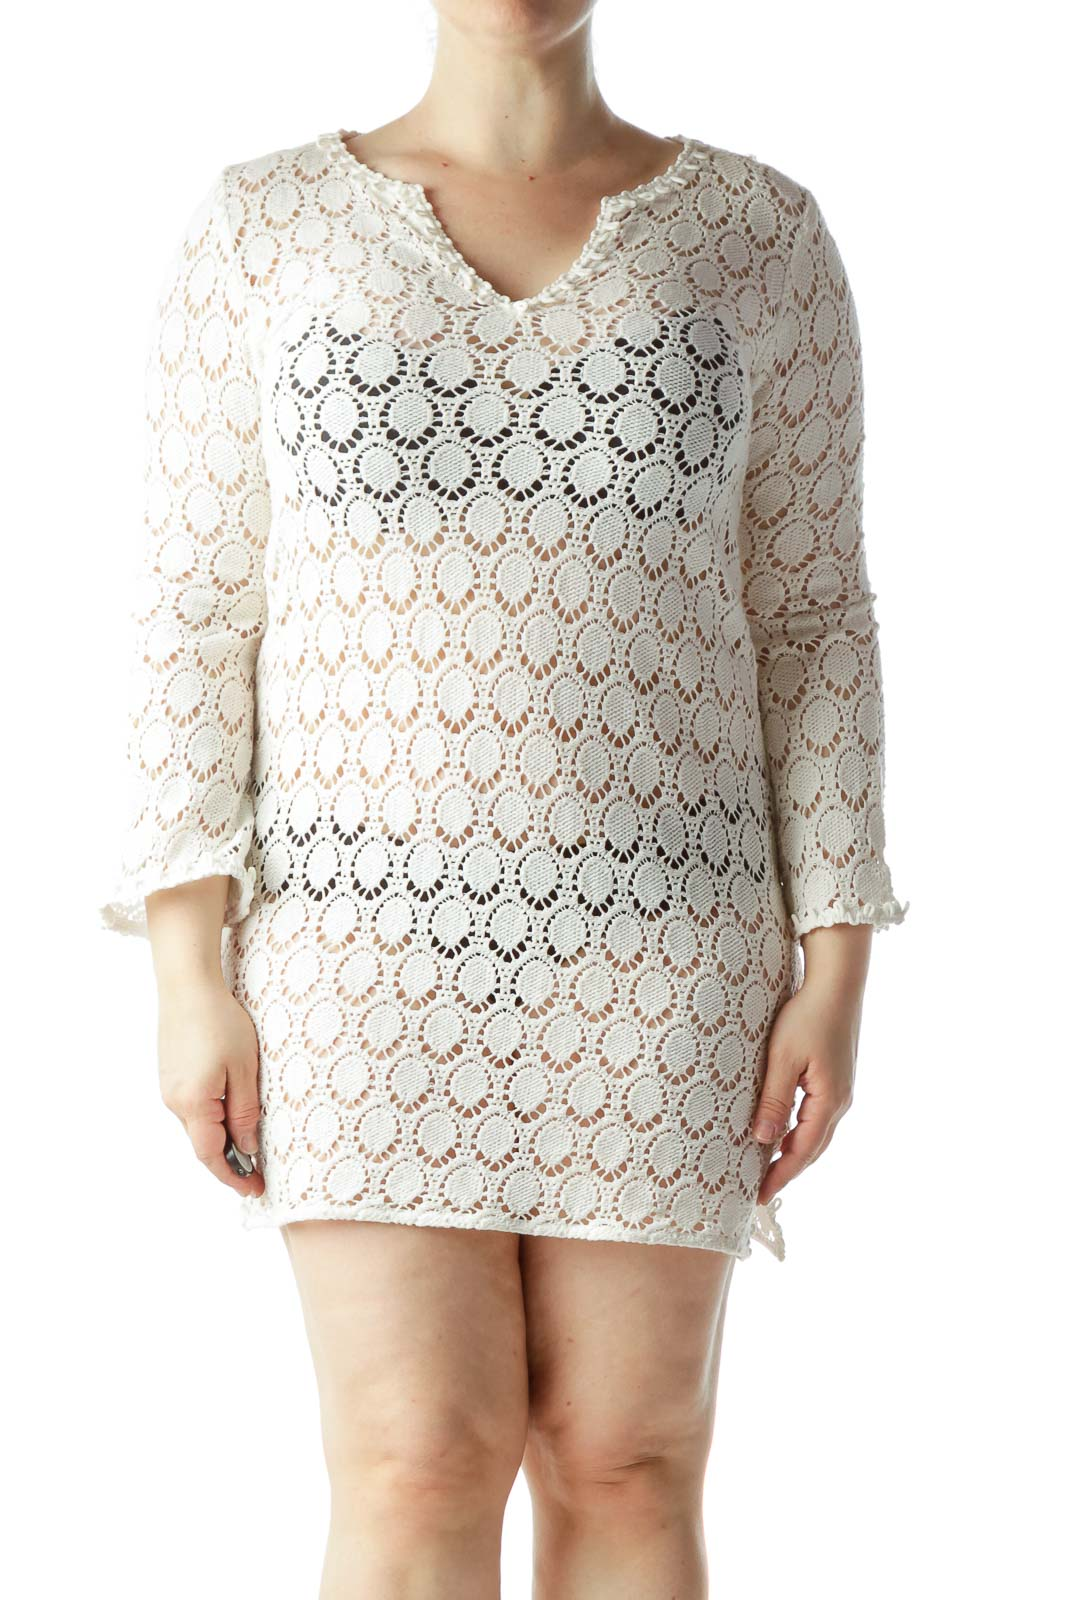 Cream Crocheted V-Neck See-Through Tunic Dress